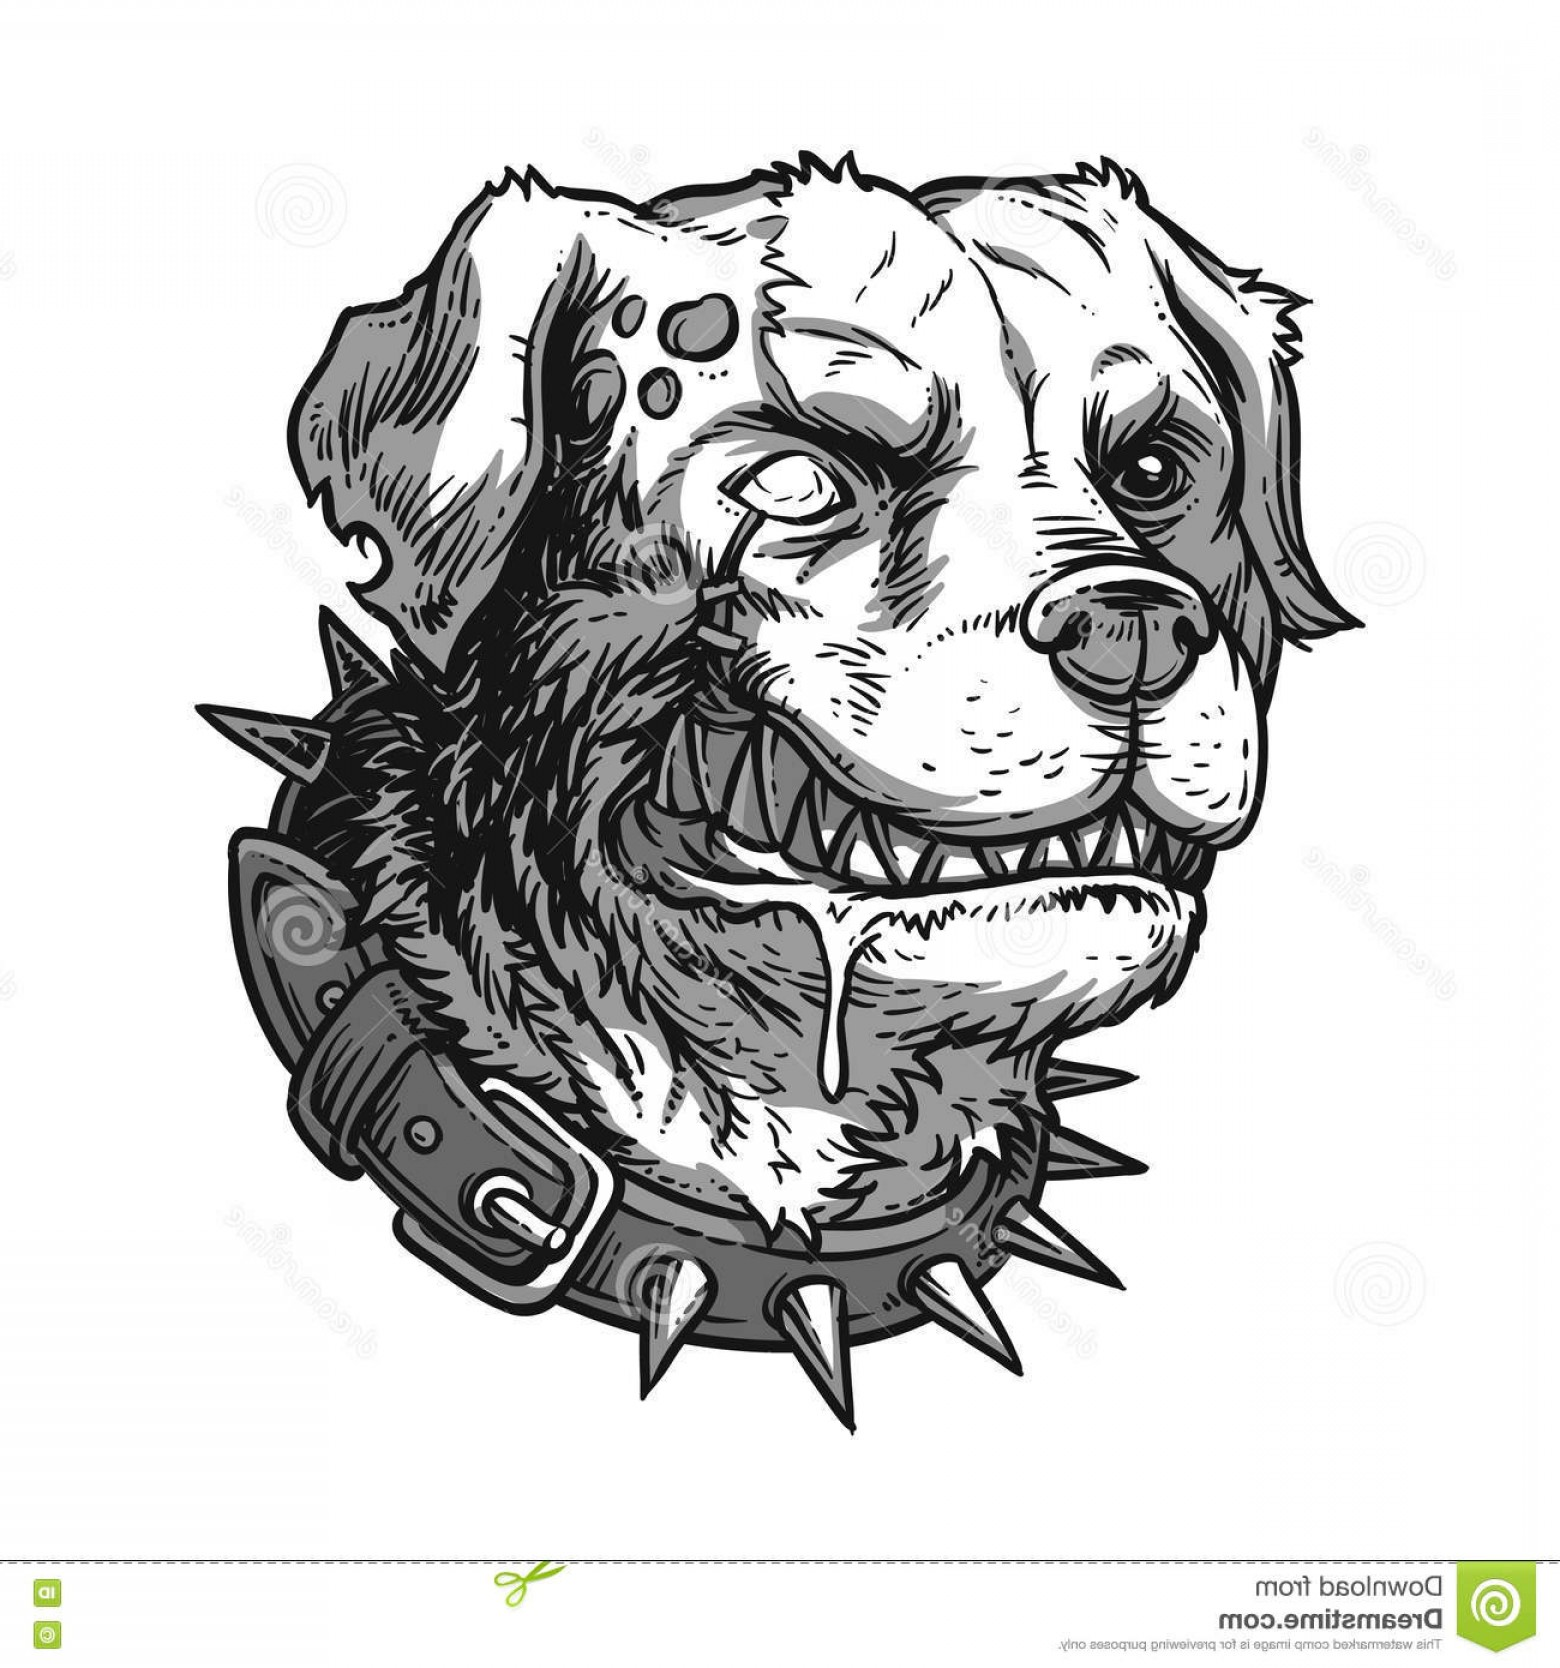 Mad Vector: Stock Illustration Vector Illustration Evil Mad Dog Grinning Teeth Image